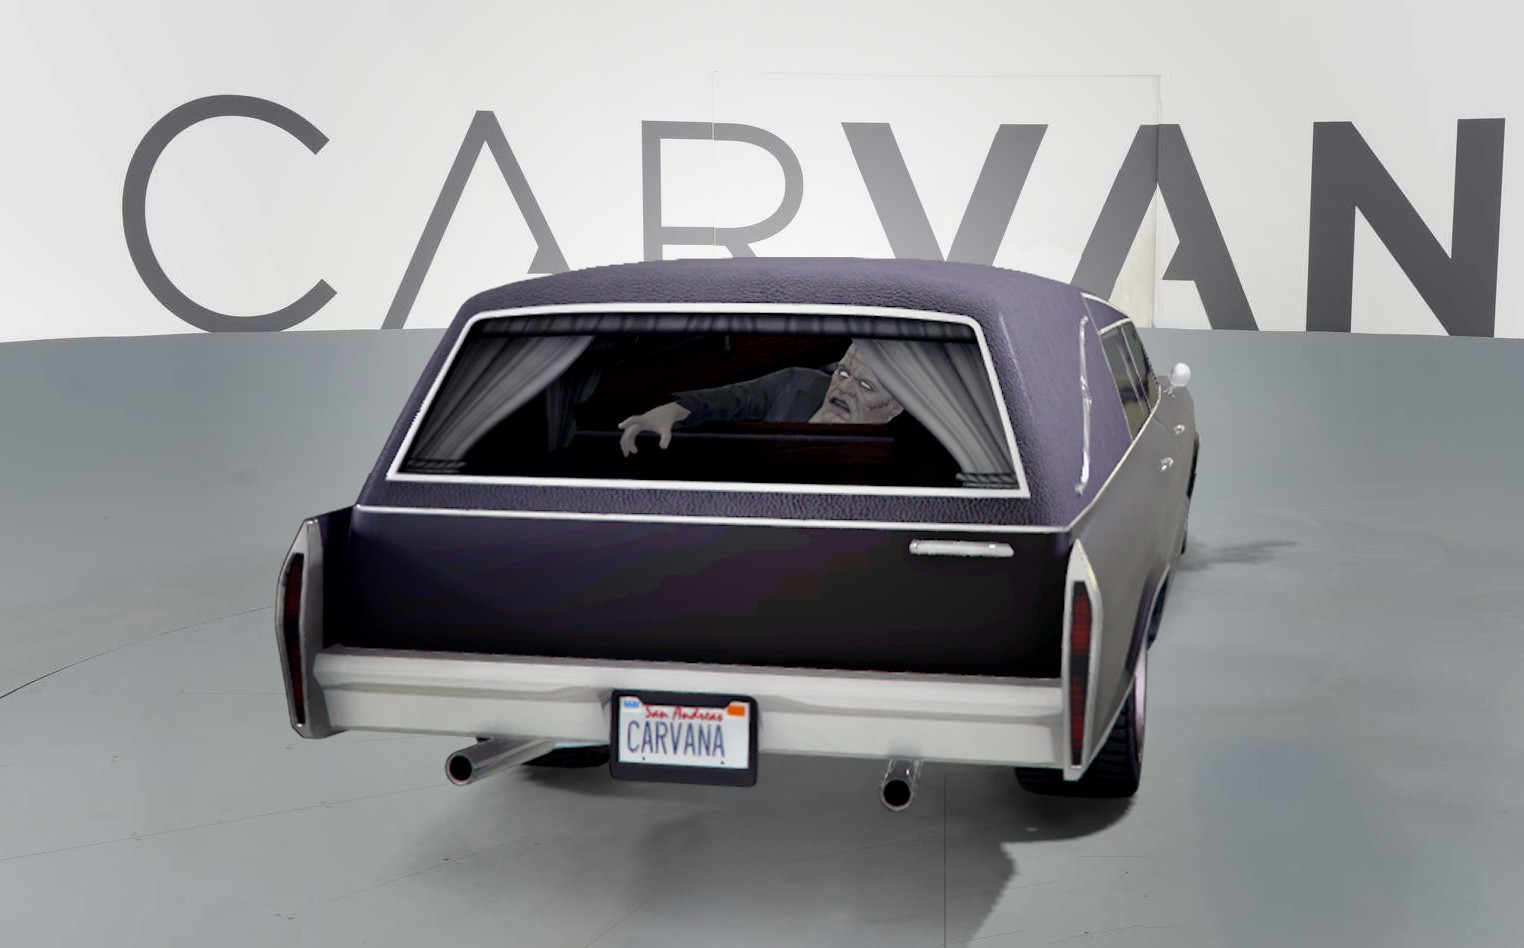 /hacking-gta-v-for-carvana-kaggle-challenge-6d0b7fb4c781 feature image